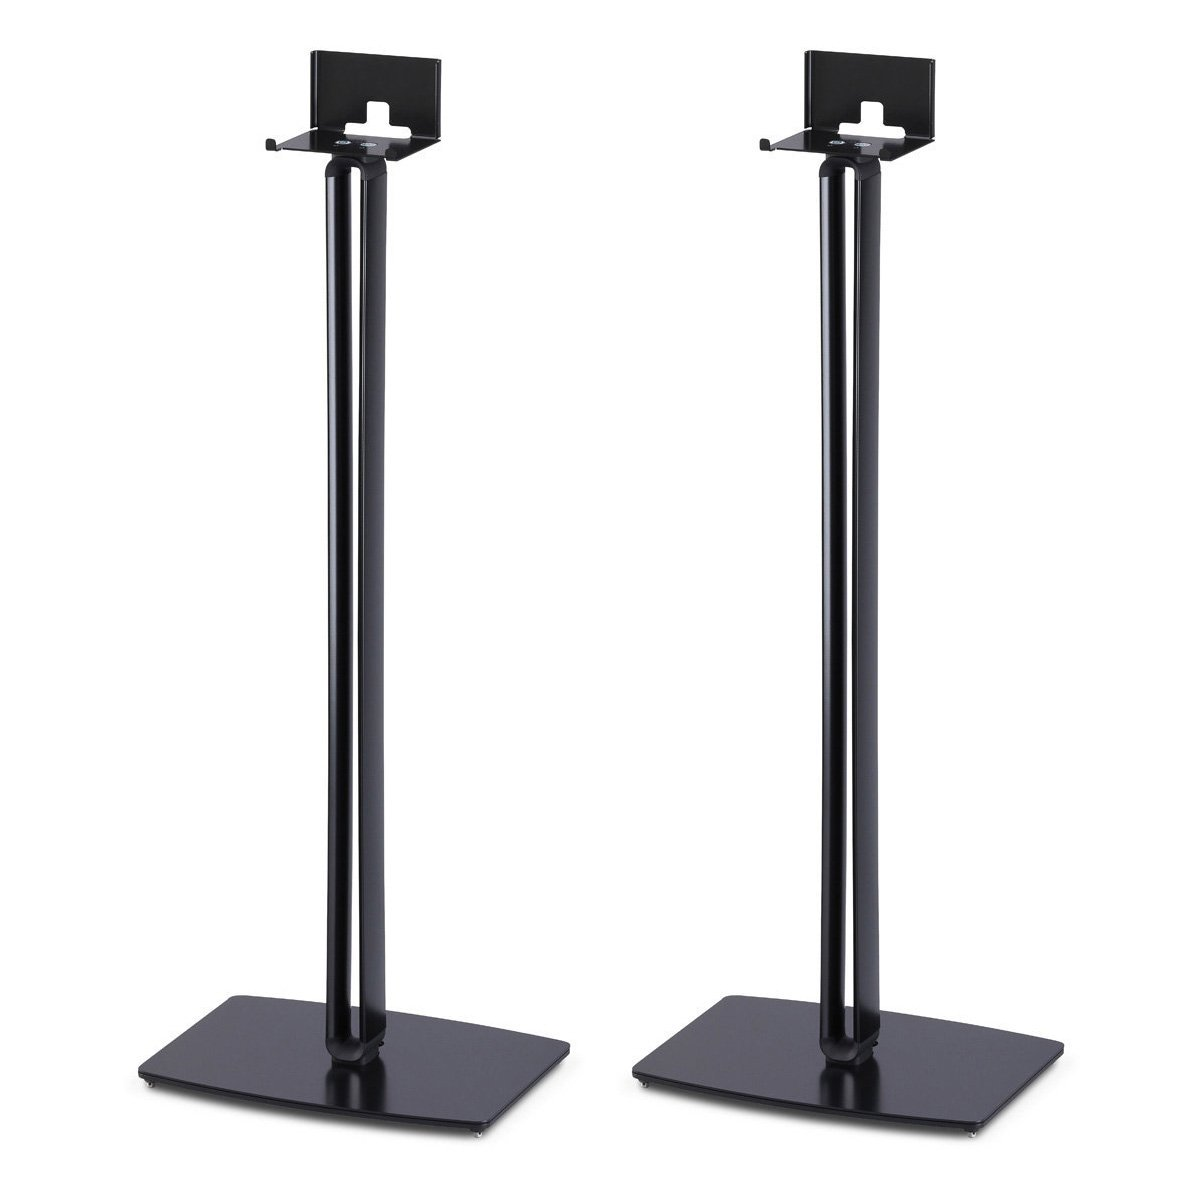 SoundXtra Floor Stands for Bose SoundTouch 10 - Pair (Black) by SoundXtra